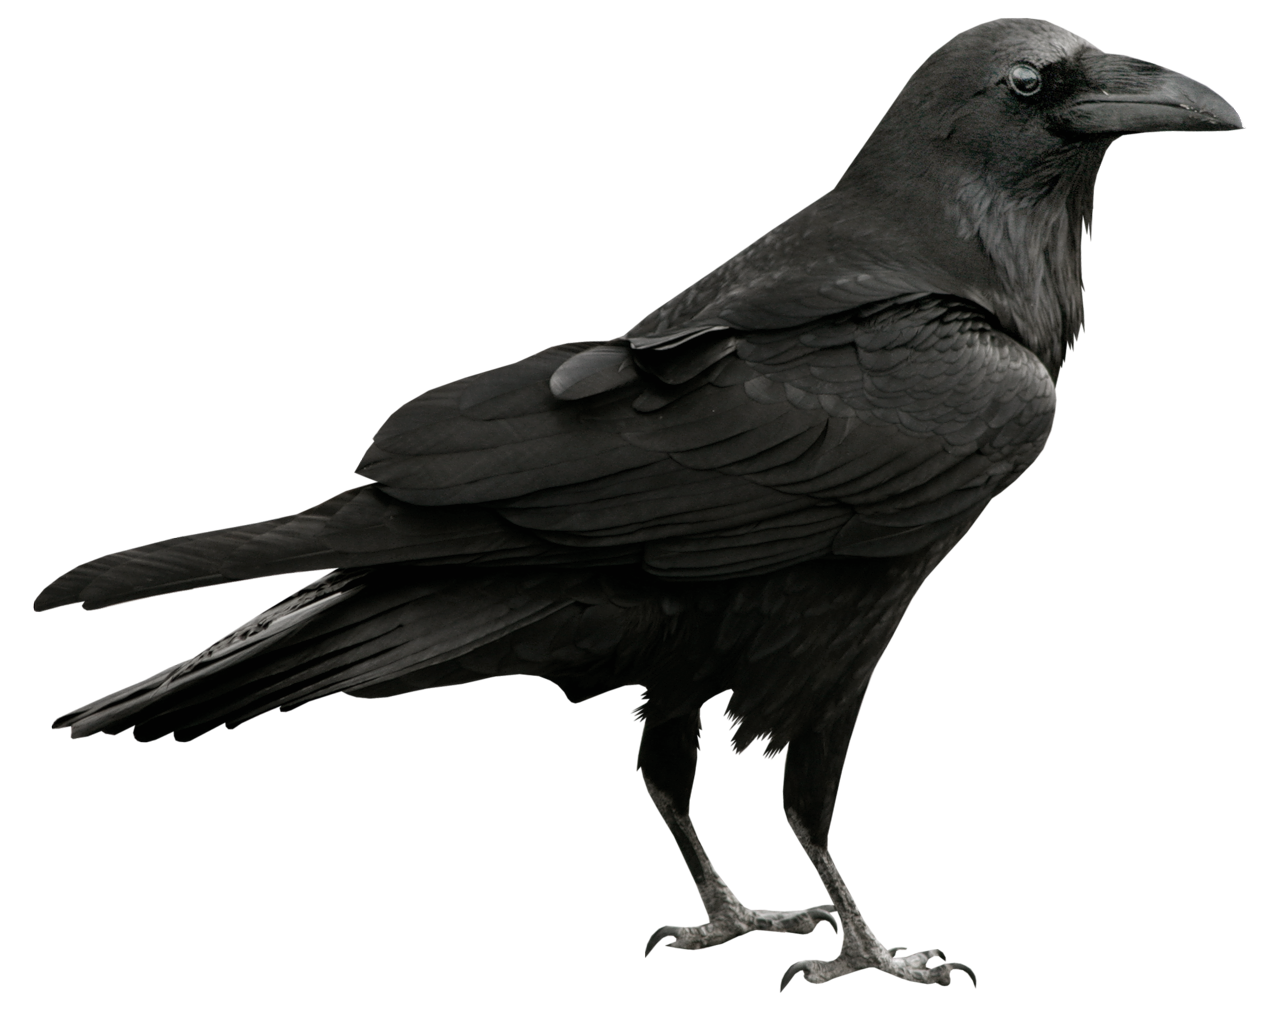 Raven transparent png picture. Fundraising clipart animated